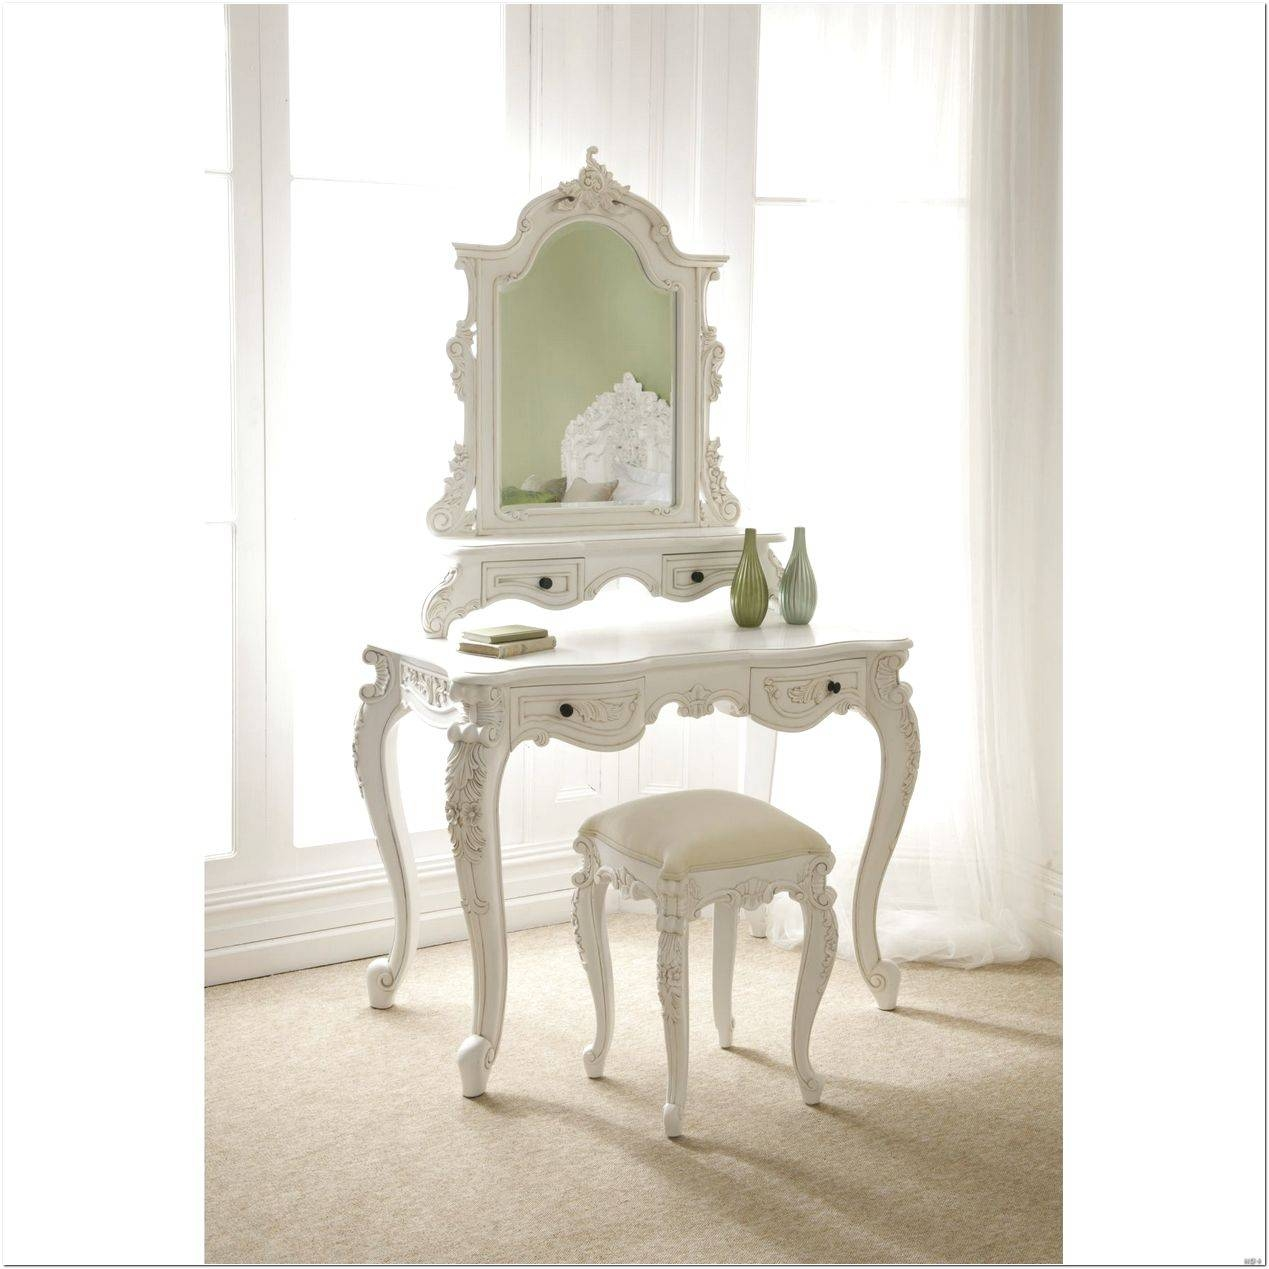 Venetian Dressing Table Mirror Design Ideas - Interior Design For intended for Venetian Dressing Table Mirrors (Image 8 of 15)